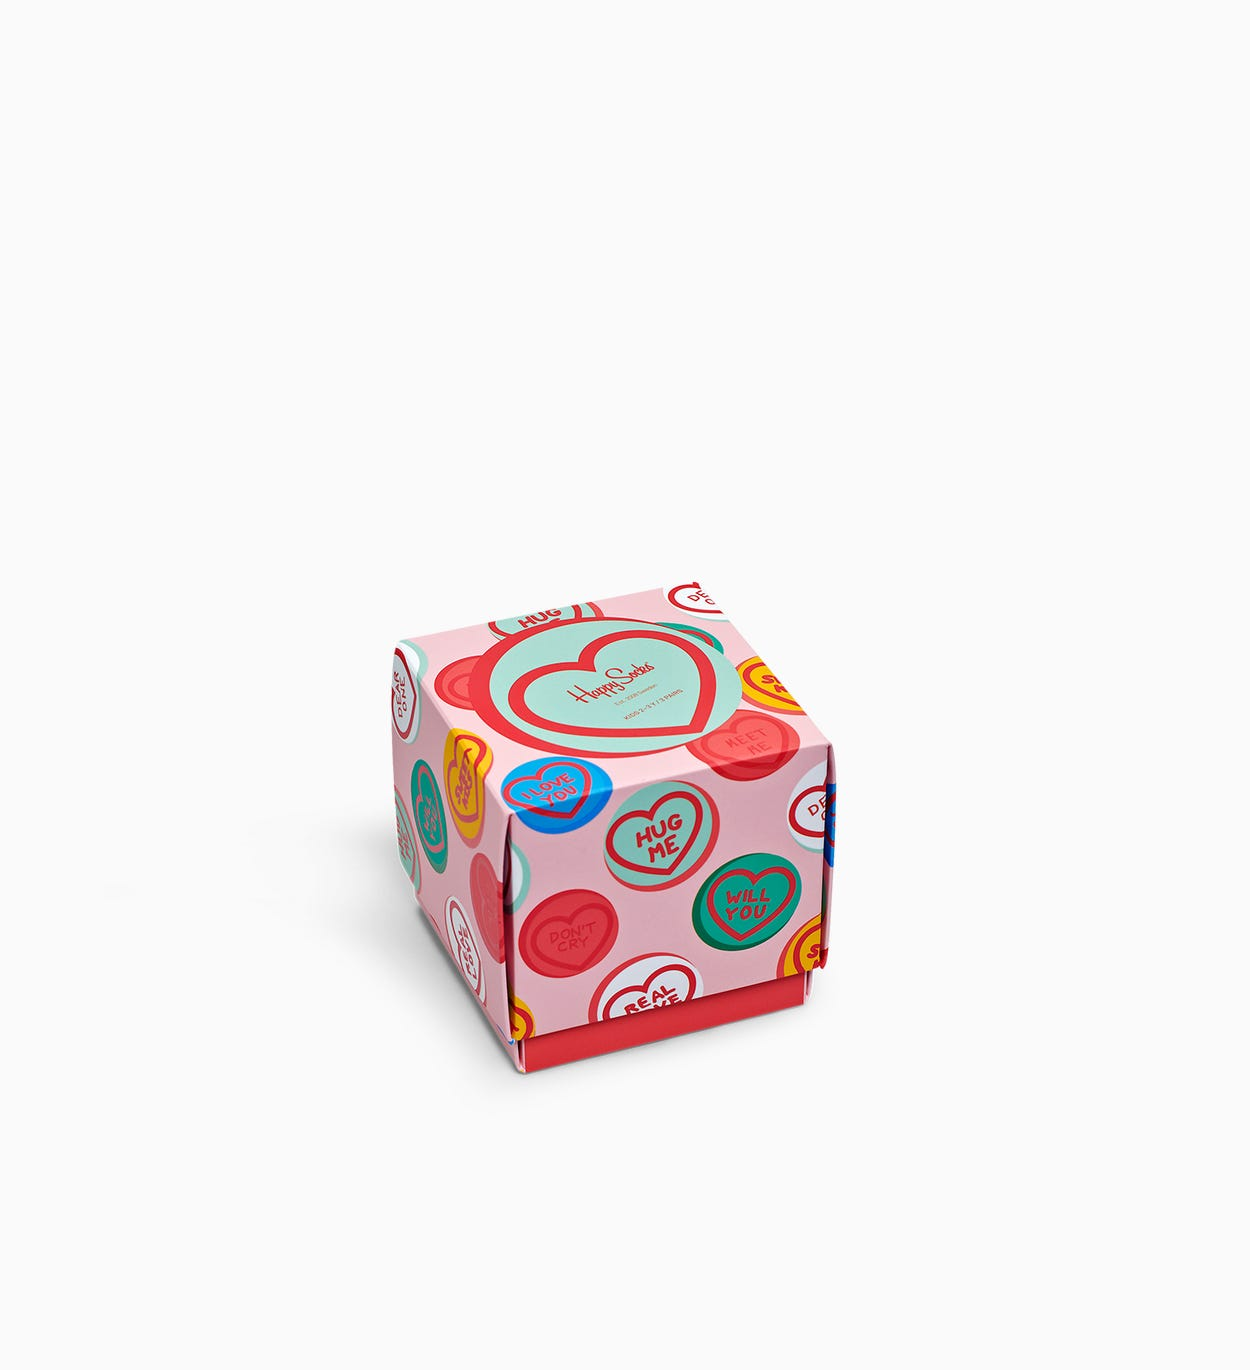 I Love You Geschenkbox für Kinder, Pink | Happy Socks